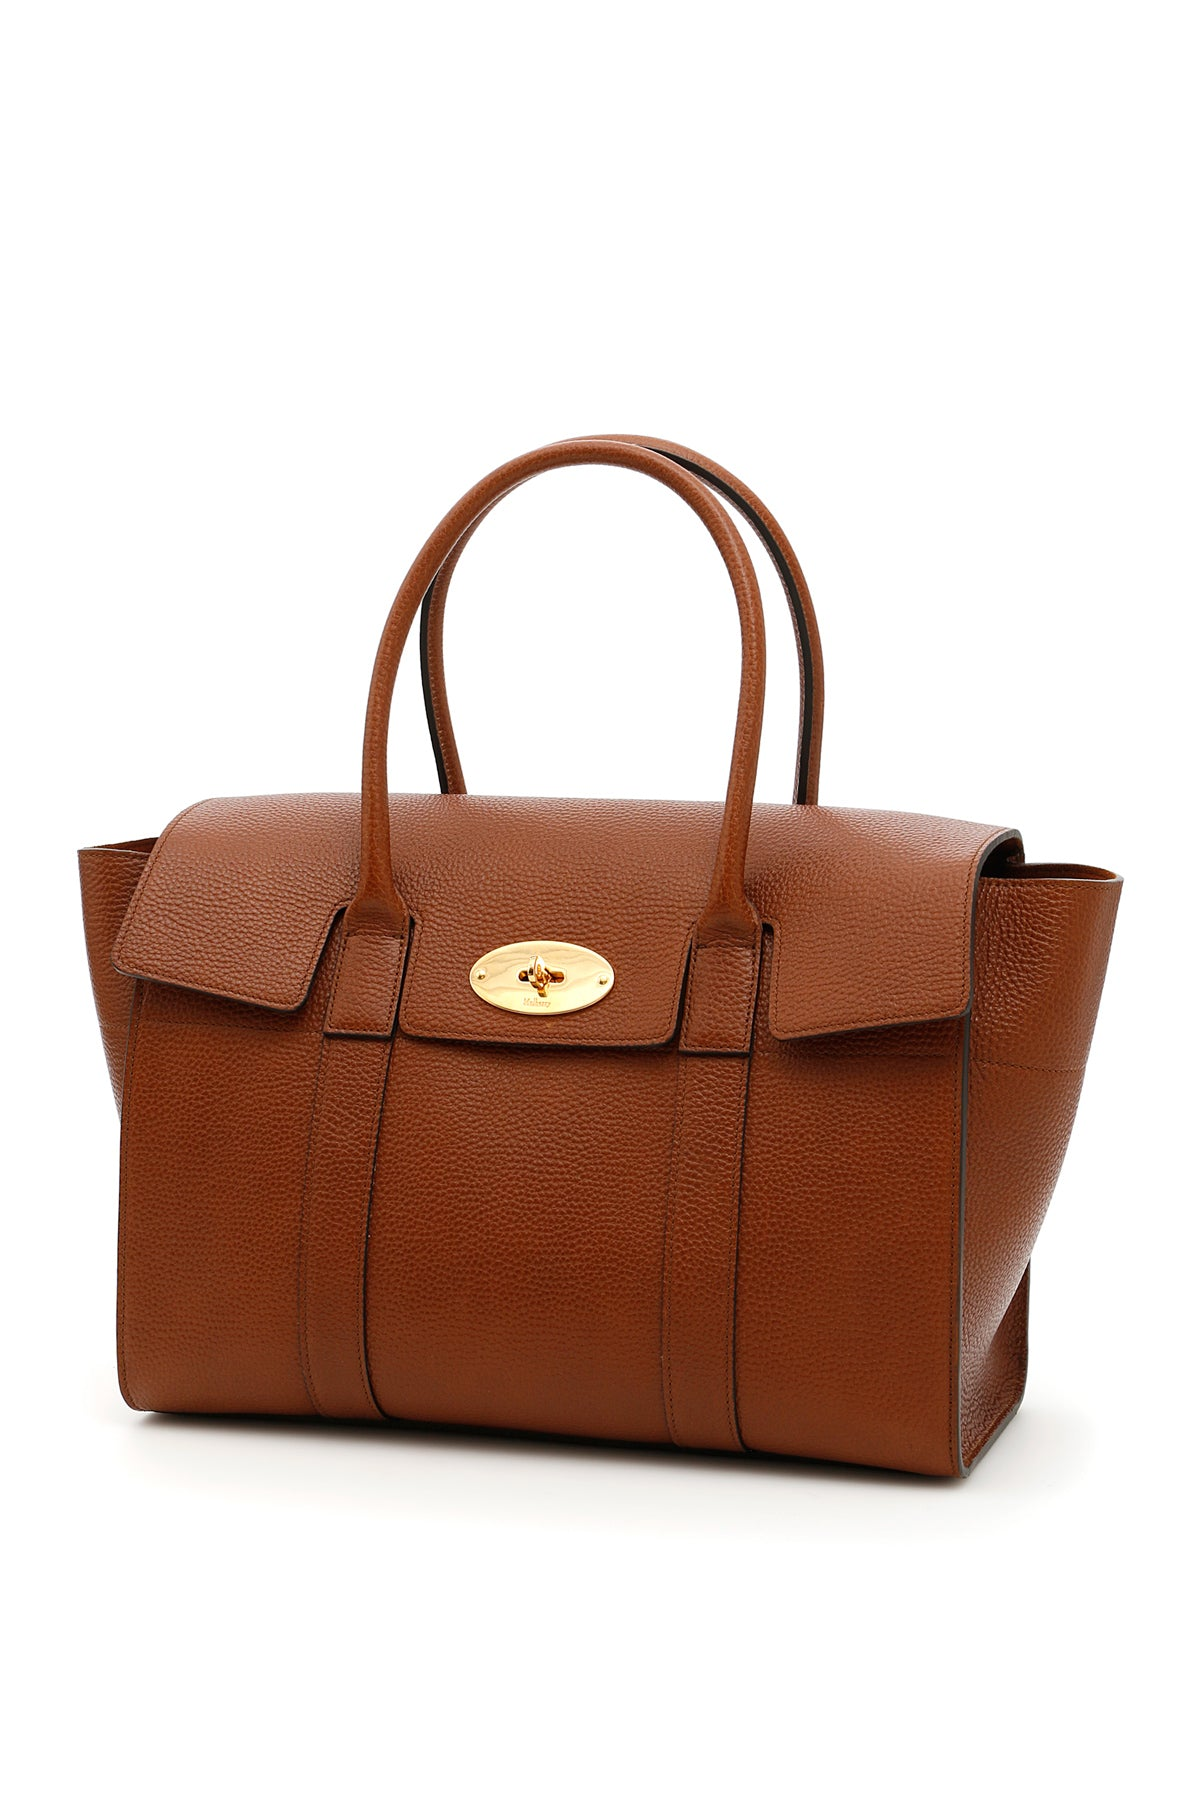 MULBERRY MEDIUM FLAP COVER HAND BAG